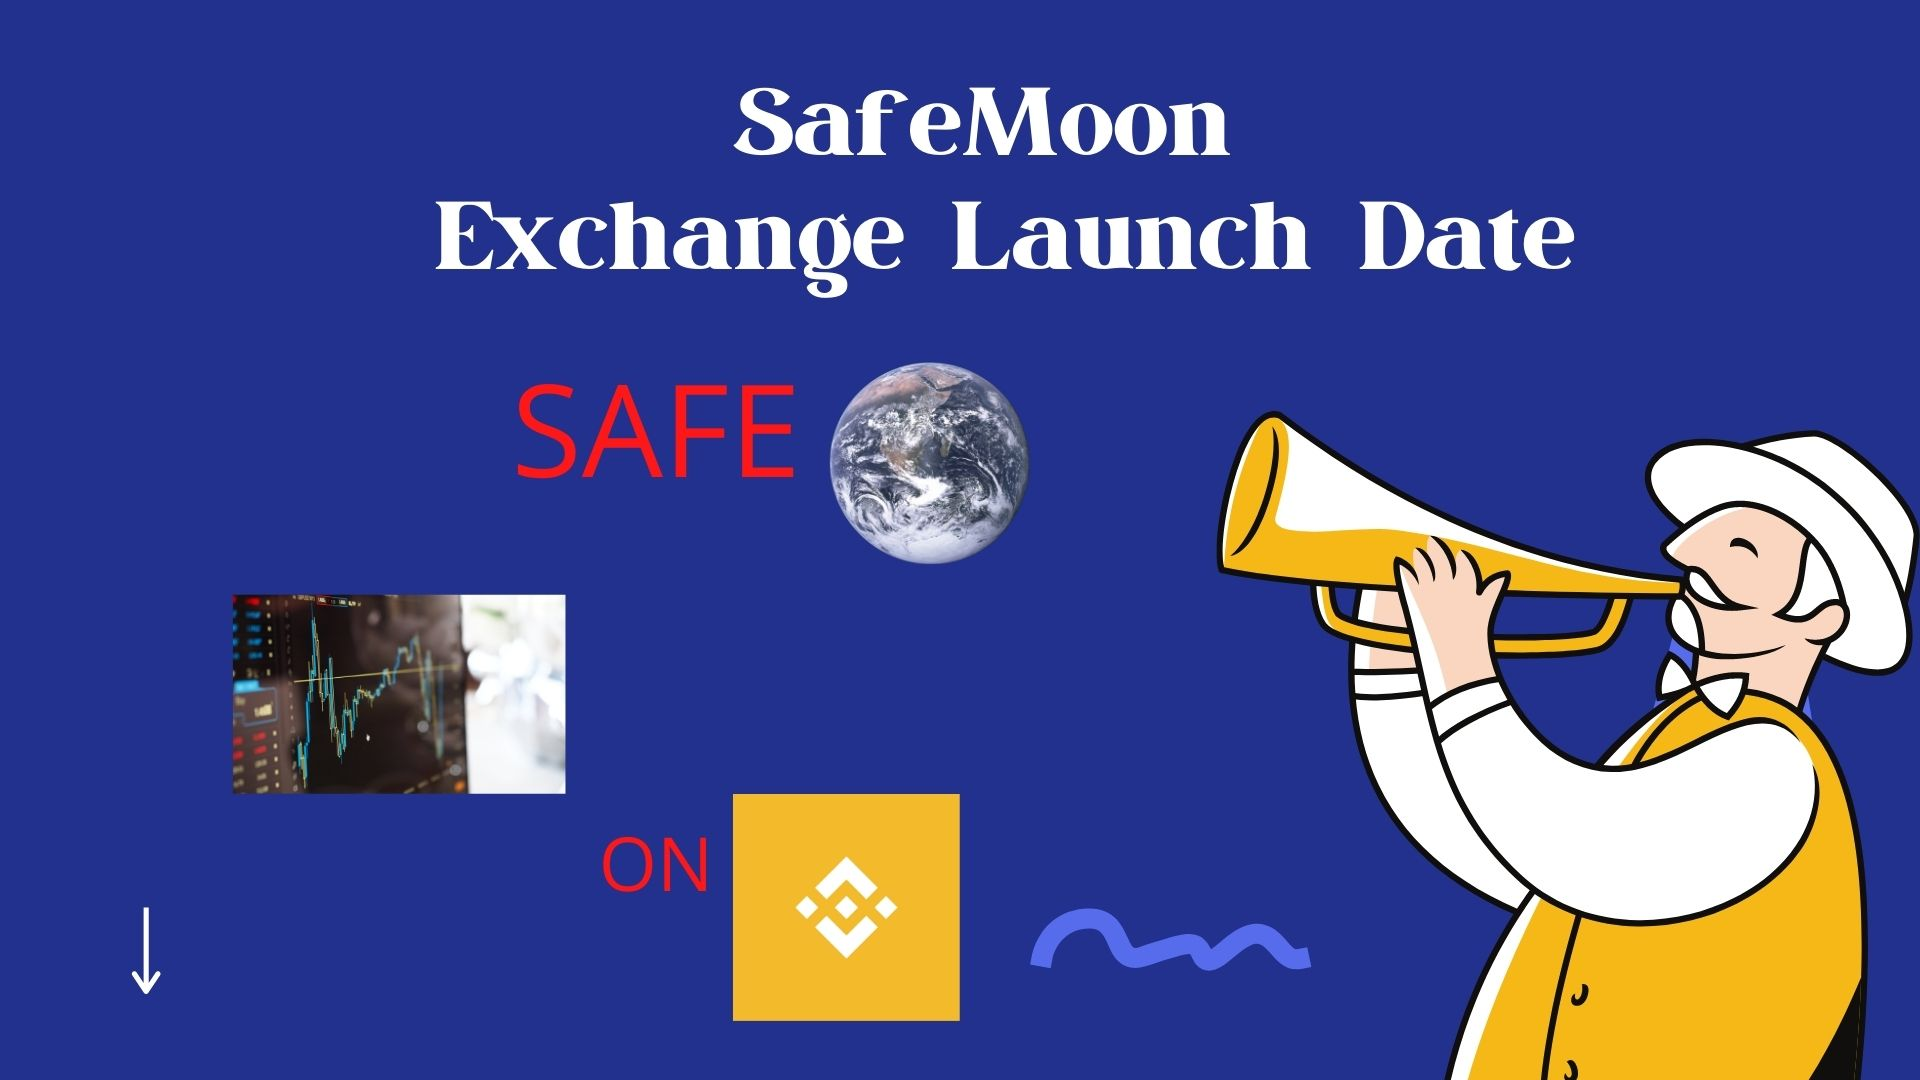 SafeMoon Exchange Launch Date